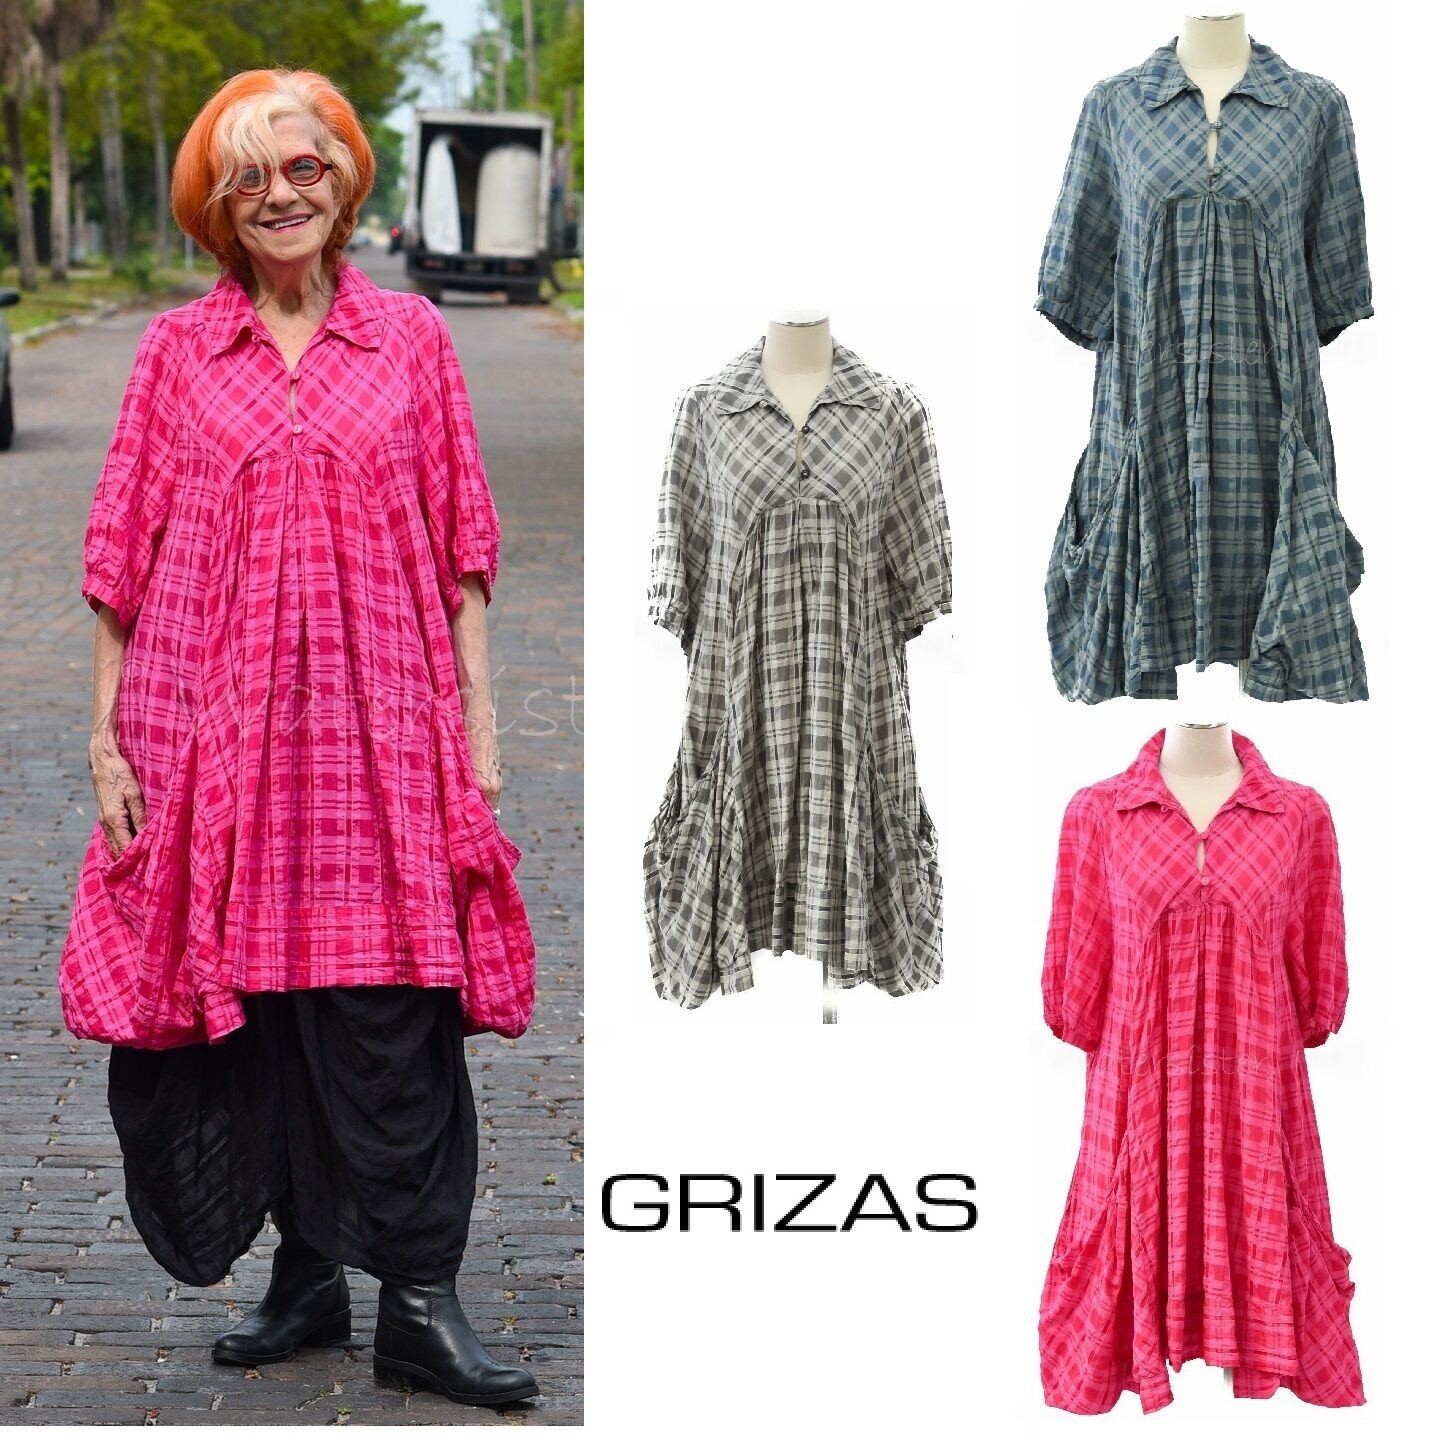 GRIZAS Silk Cotton 51425 PRAIRIE TUNIC Long Pocket Top XS - XXXL 3 Farbes PLAID